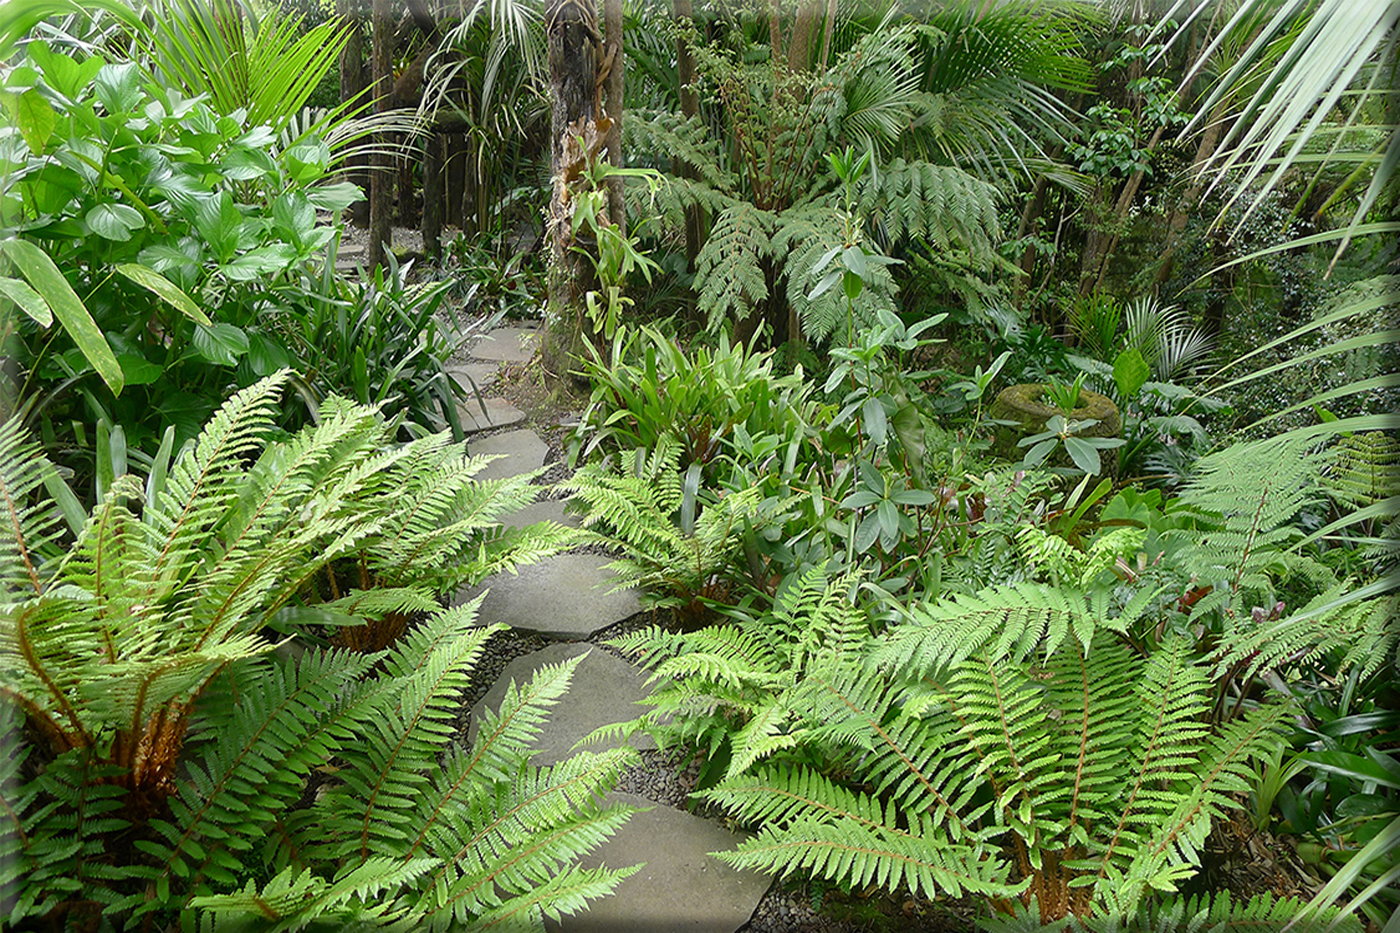 Titirangi garden photos lanzscapes for New zealand garden designs ideas